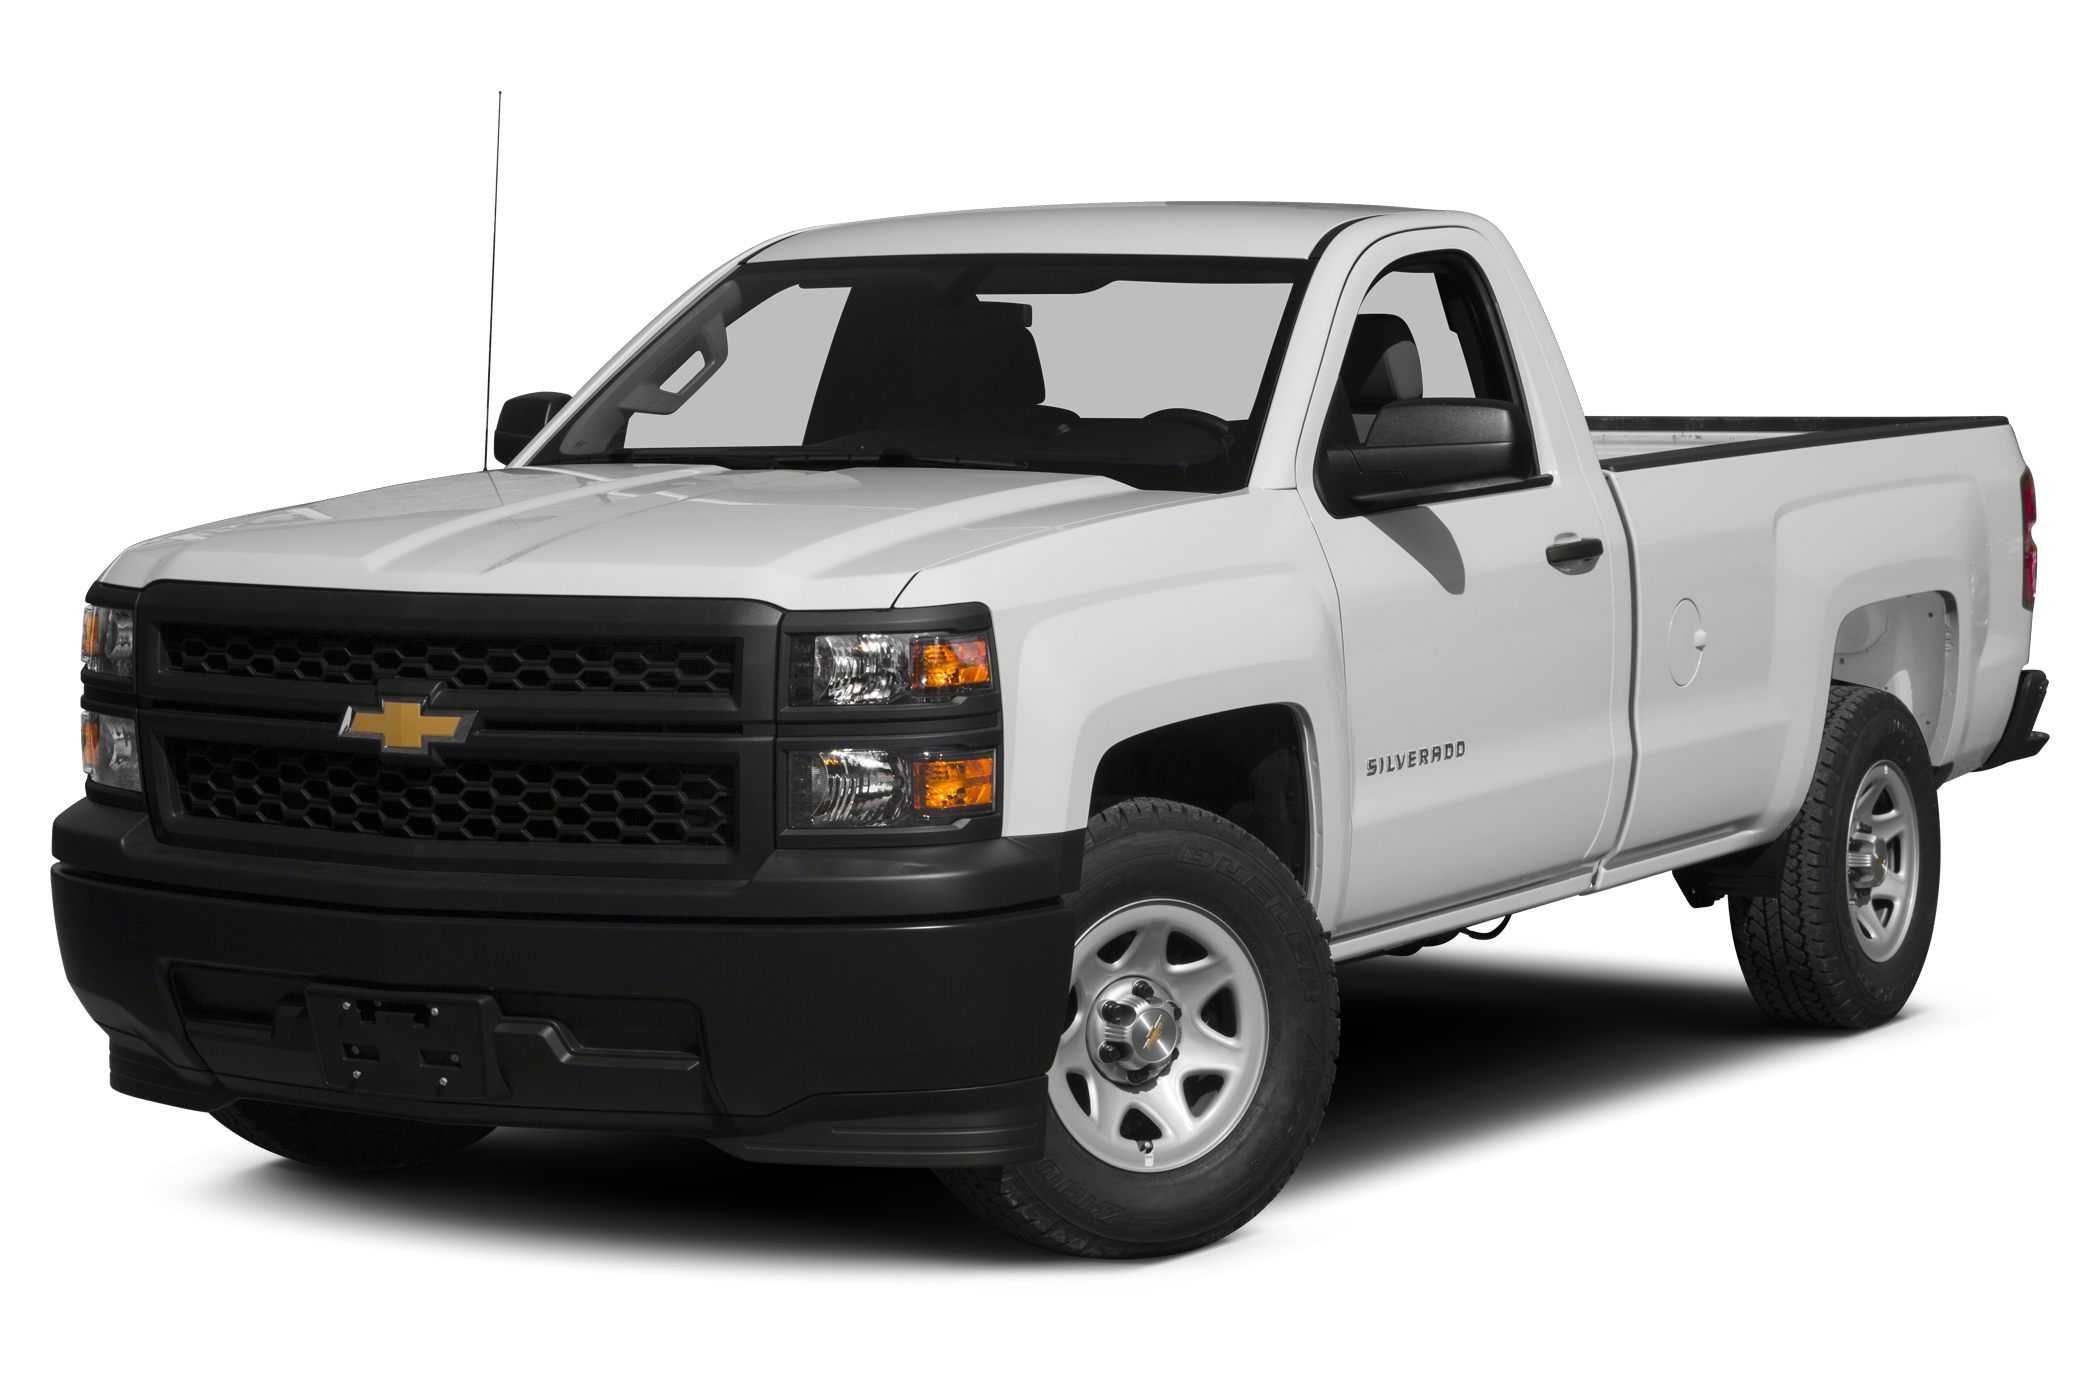 2015 Chevrolet Silverado 1500 1LT Extended Cab Pickup for sale in Eugene for $44,265 with 4 miles.